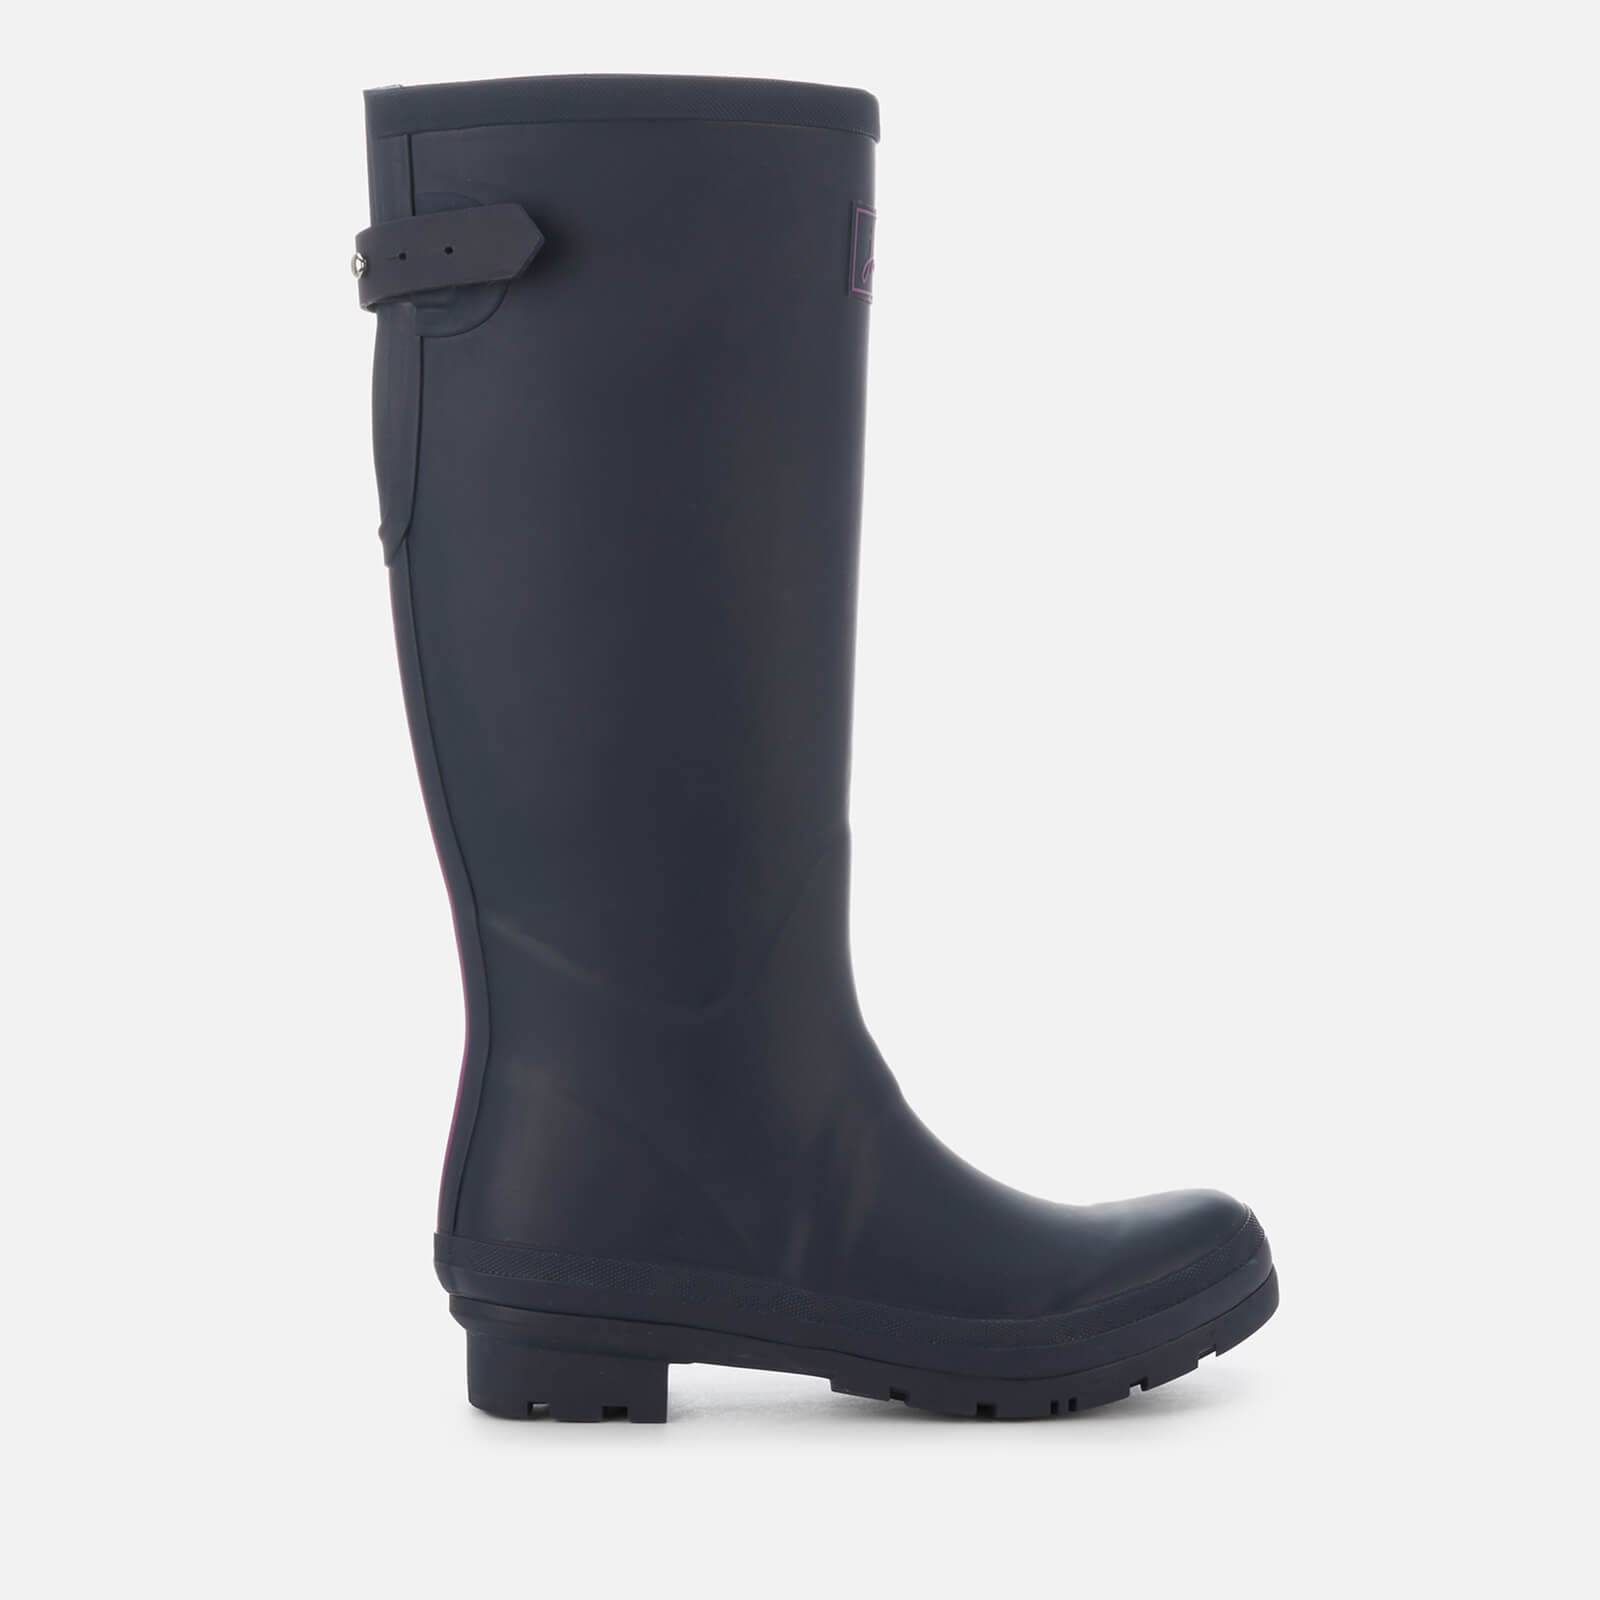 Joules Women's Field Back Adjustable Tall Wellies - French Navy - UK 4